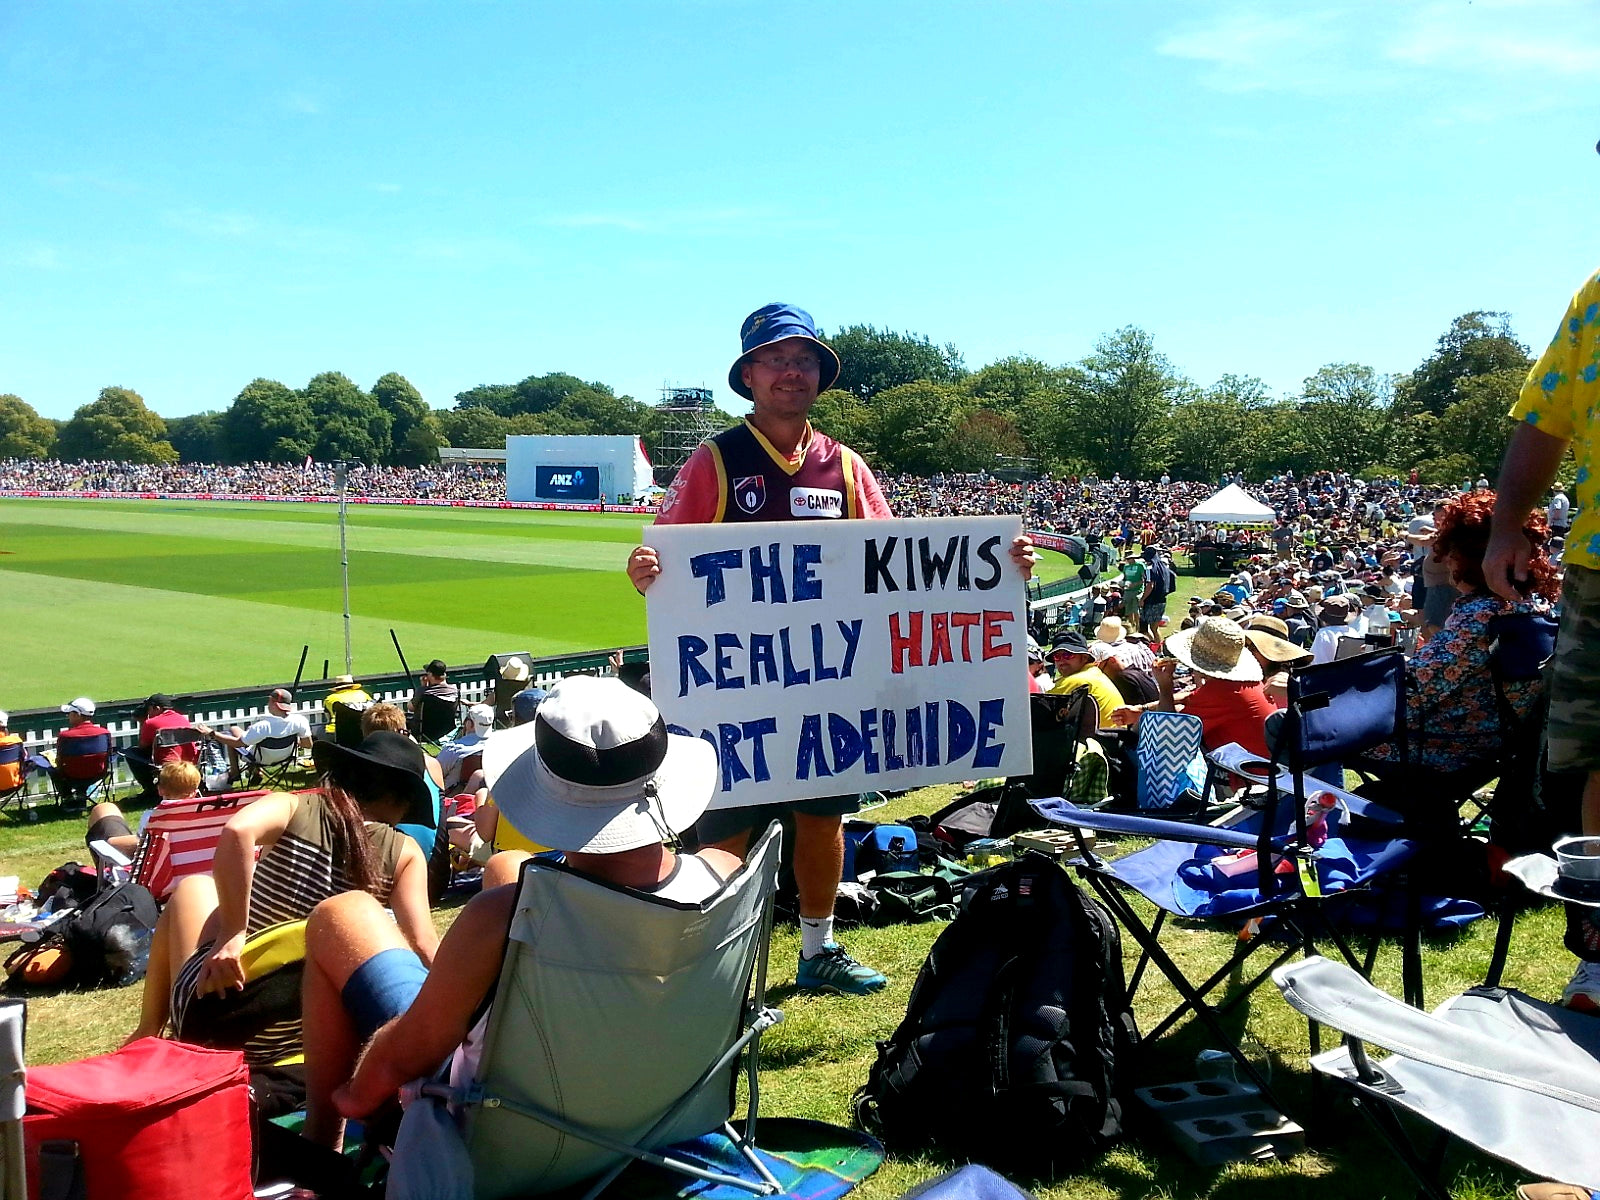 Australian Cricket Tours - An Australian Adelaide Crows Spectator Holding A Sign That Reads 'The Kiwis Really Hate Port Adelaide' At Hagley Oval, Christchurch New Zealand